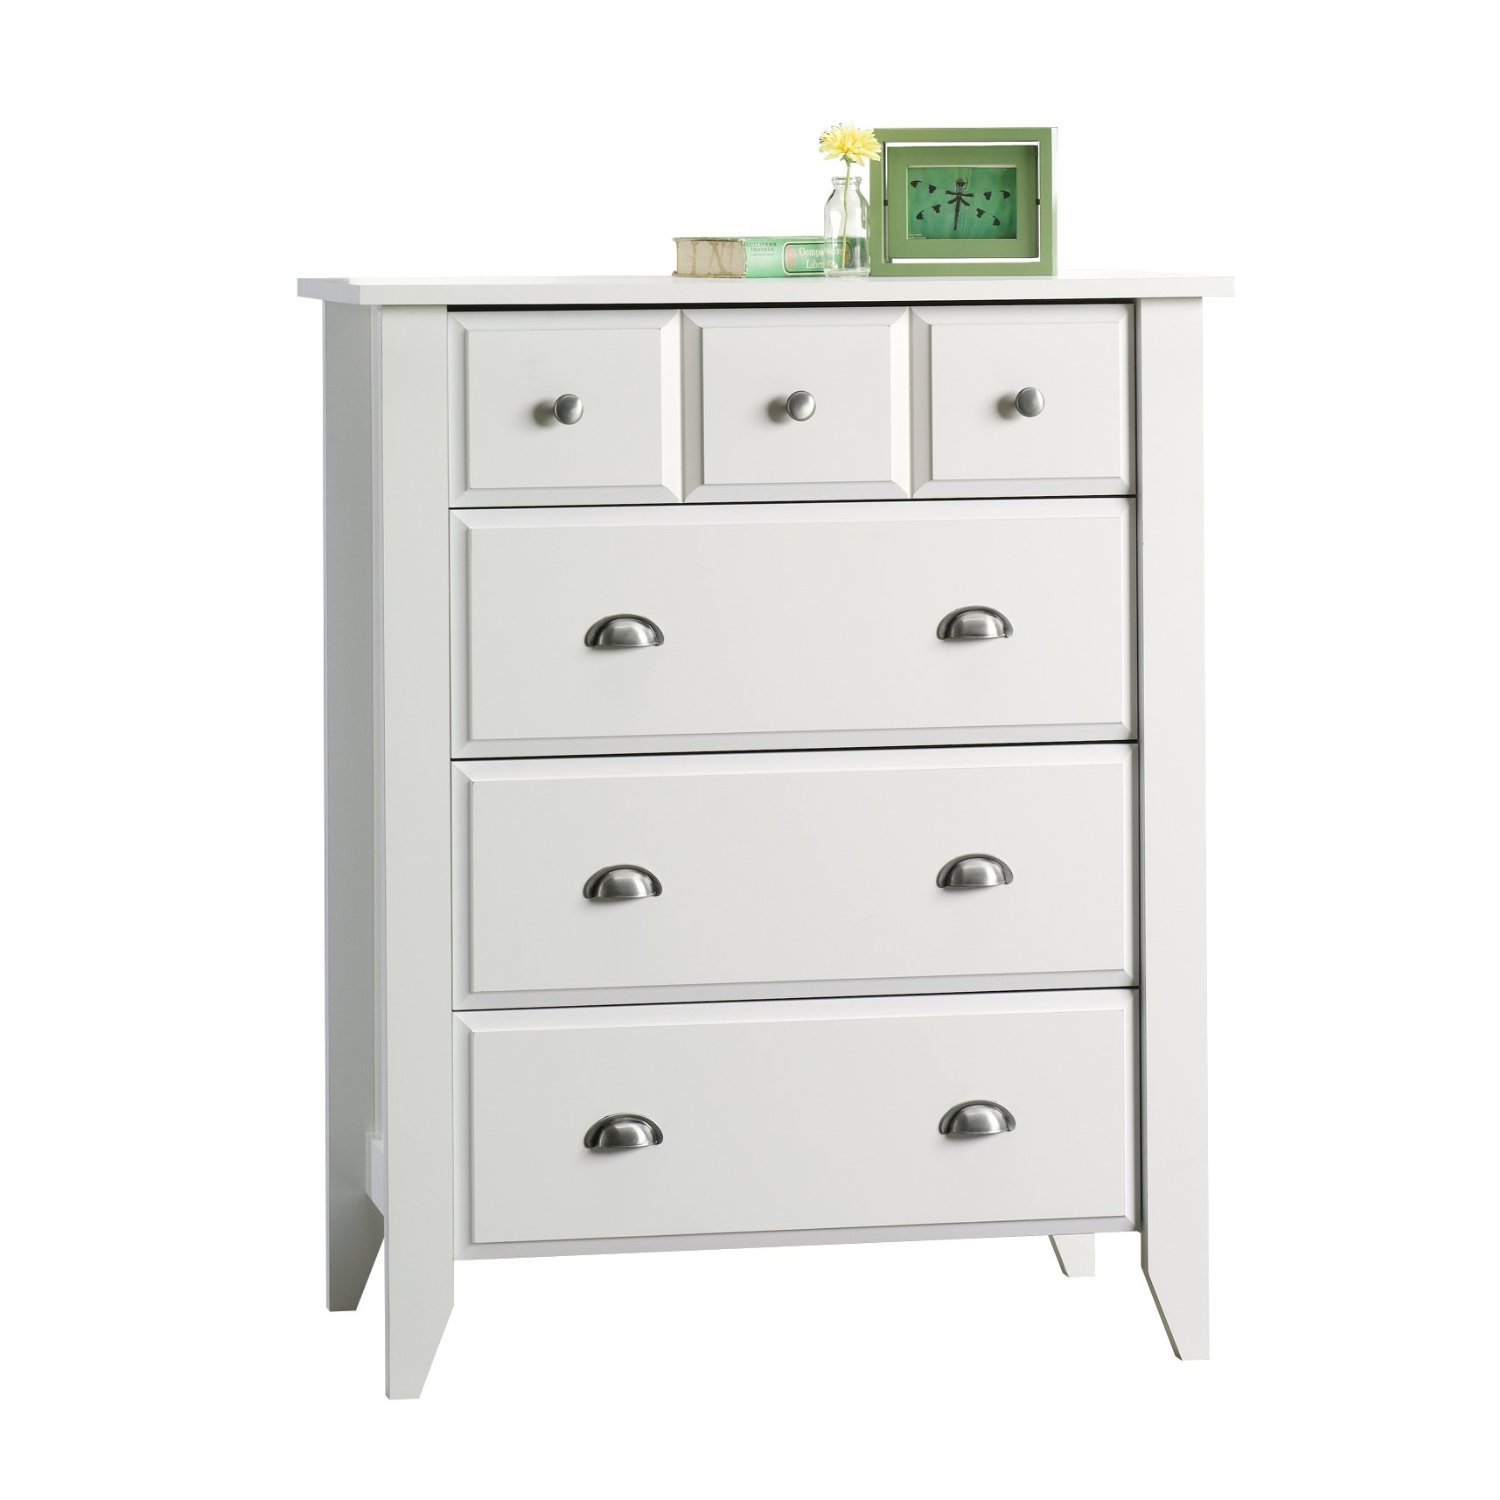 Modern Four Drawer Dresser - Contemporary Elegant Stylish Chest Indoor Furniture Home Living Room Bedroom Storage Additional (White)